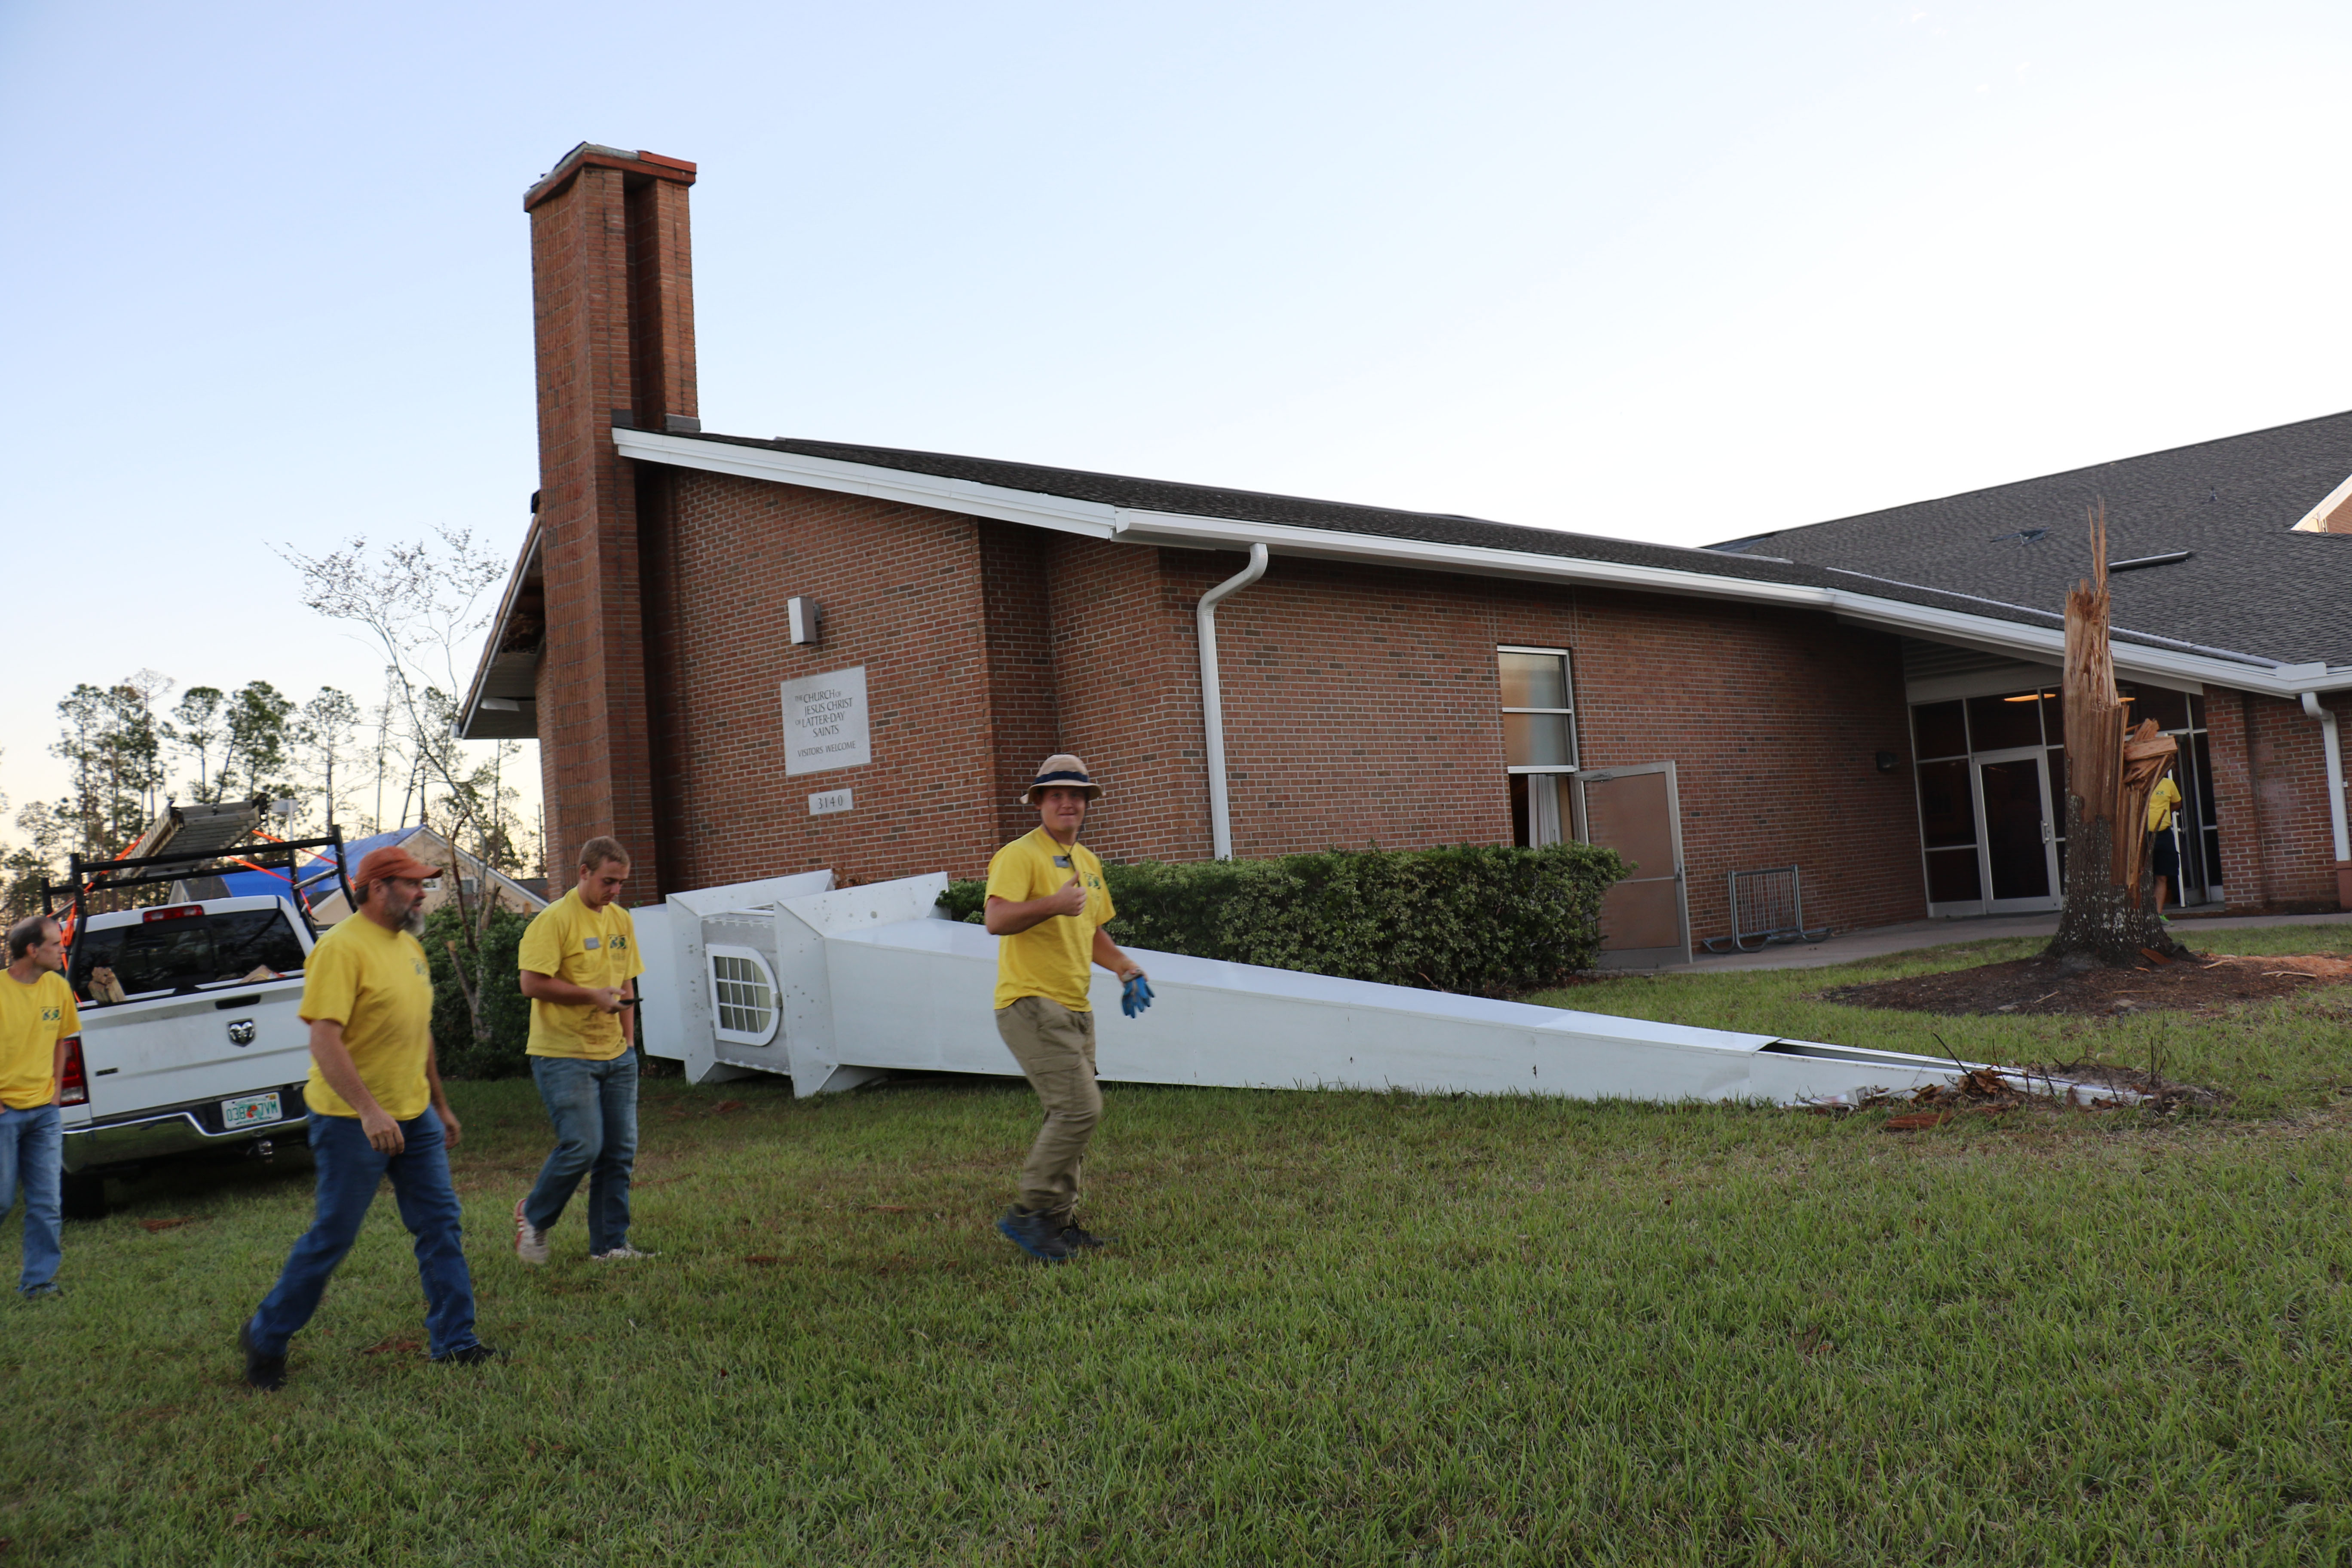 Latter-day Saint meetinghouses in Florida incurred damage from the recent hurricanes such as this one where the steeple was ripped off the roof and trees were destroyed.